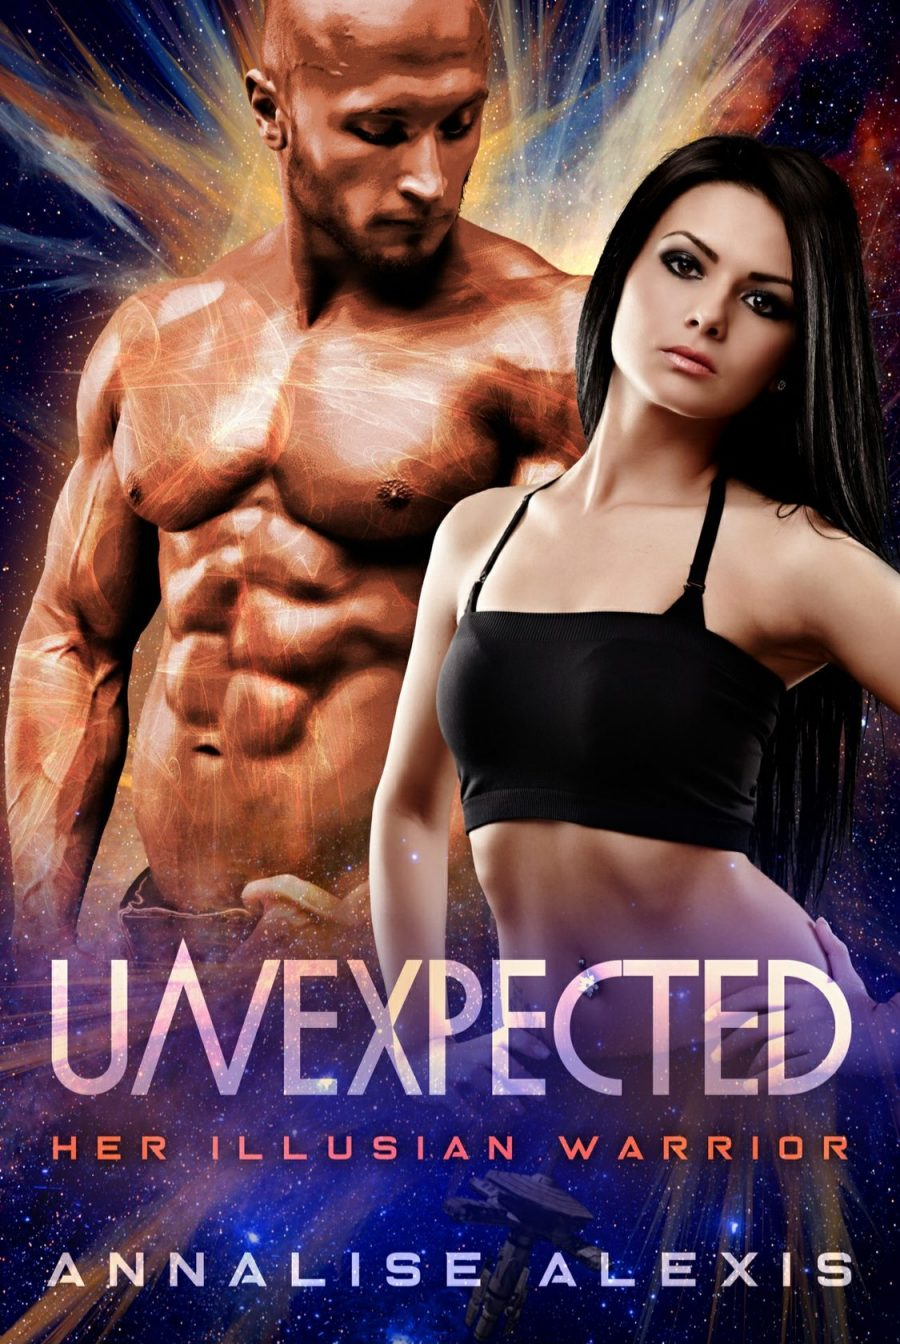 Unexpected: Her Illusian Warrior - Book 1 by Annalise Alexis - A Book Review #BookReview #Review #AlienRomance #SpaceStation #FirstInSeries #FastBurn